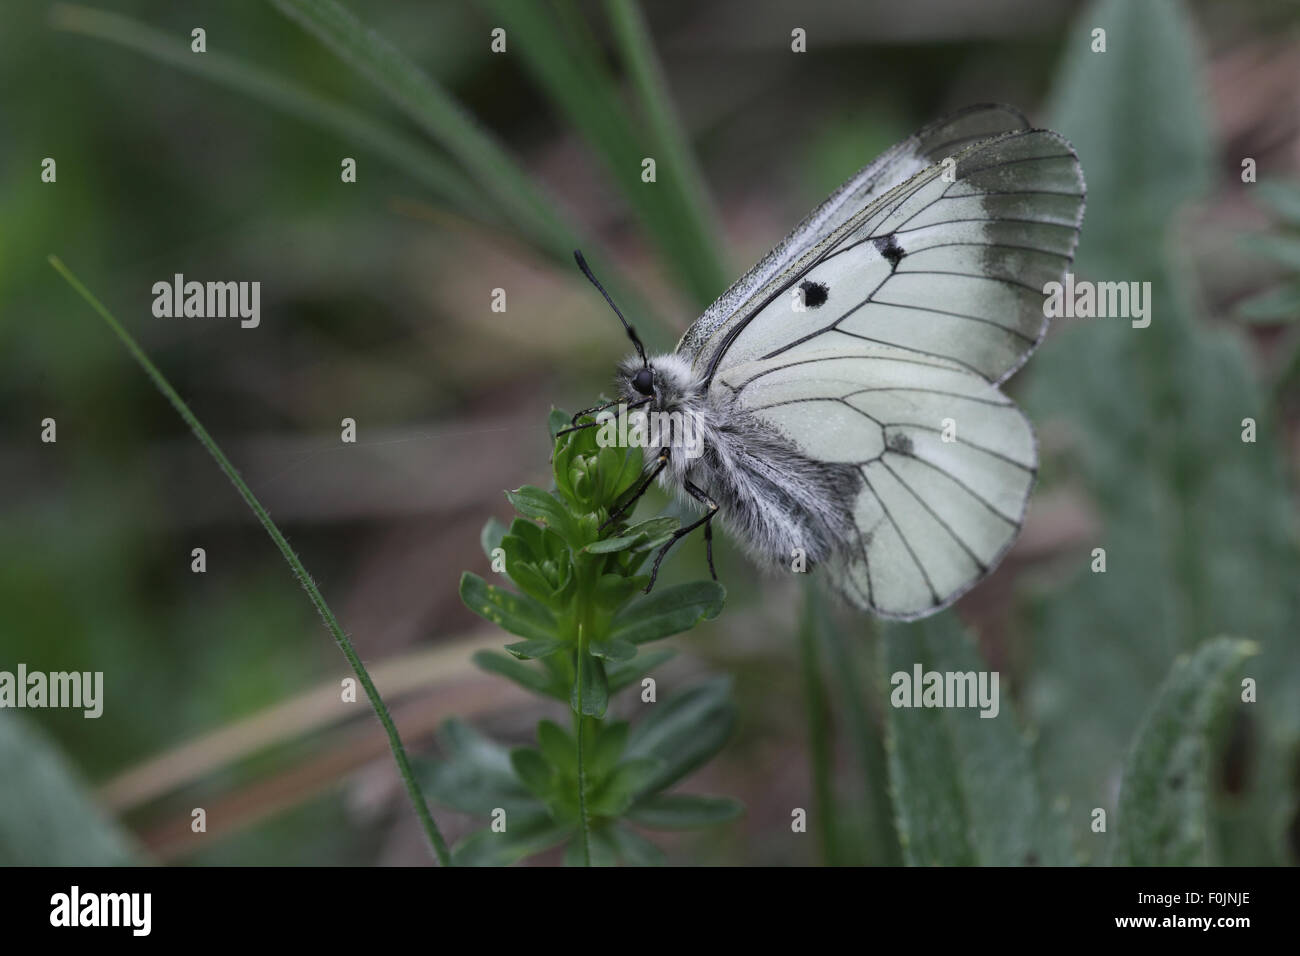 Clouded apollo Parnassius mnemosyne At rest wings closed - Stock Image